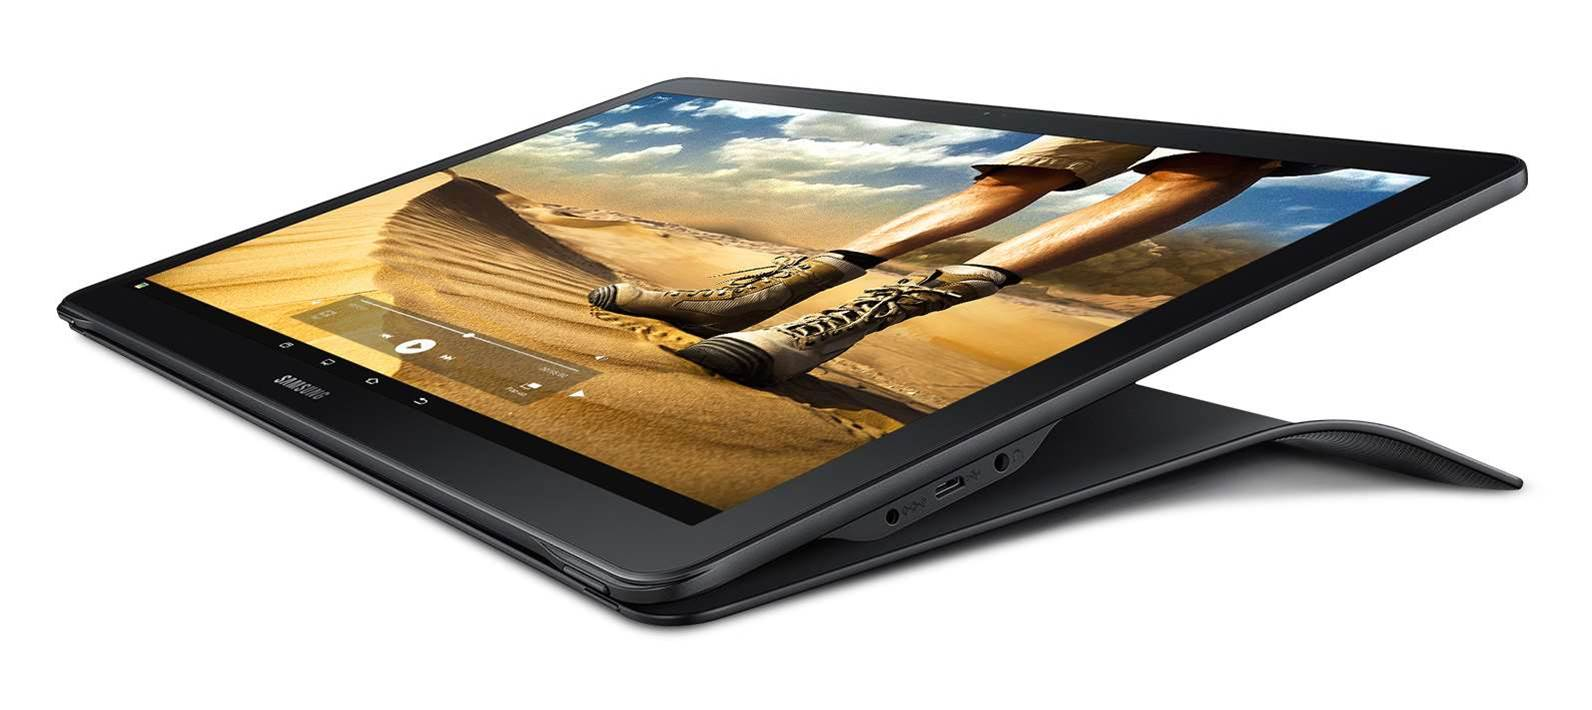 Which tablet computer?